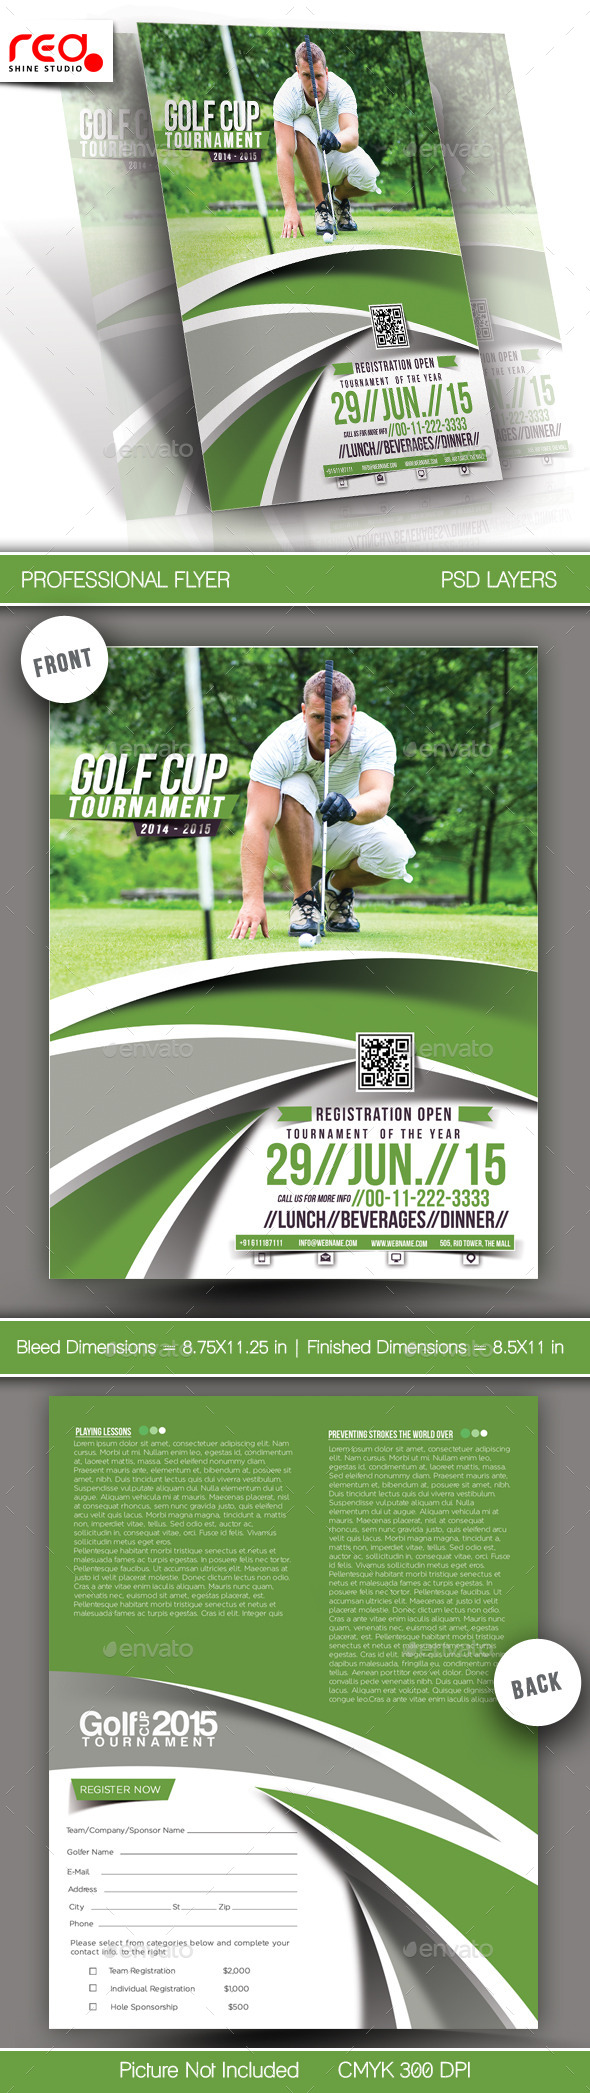 GraphicRiver Golf Cup Tournament Flyer Template 3 11766070